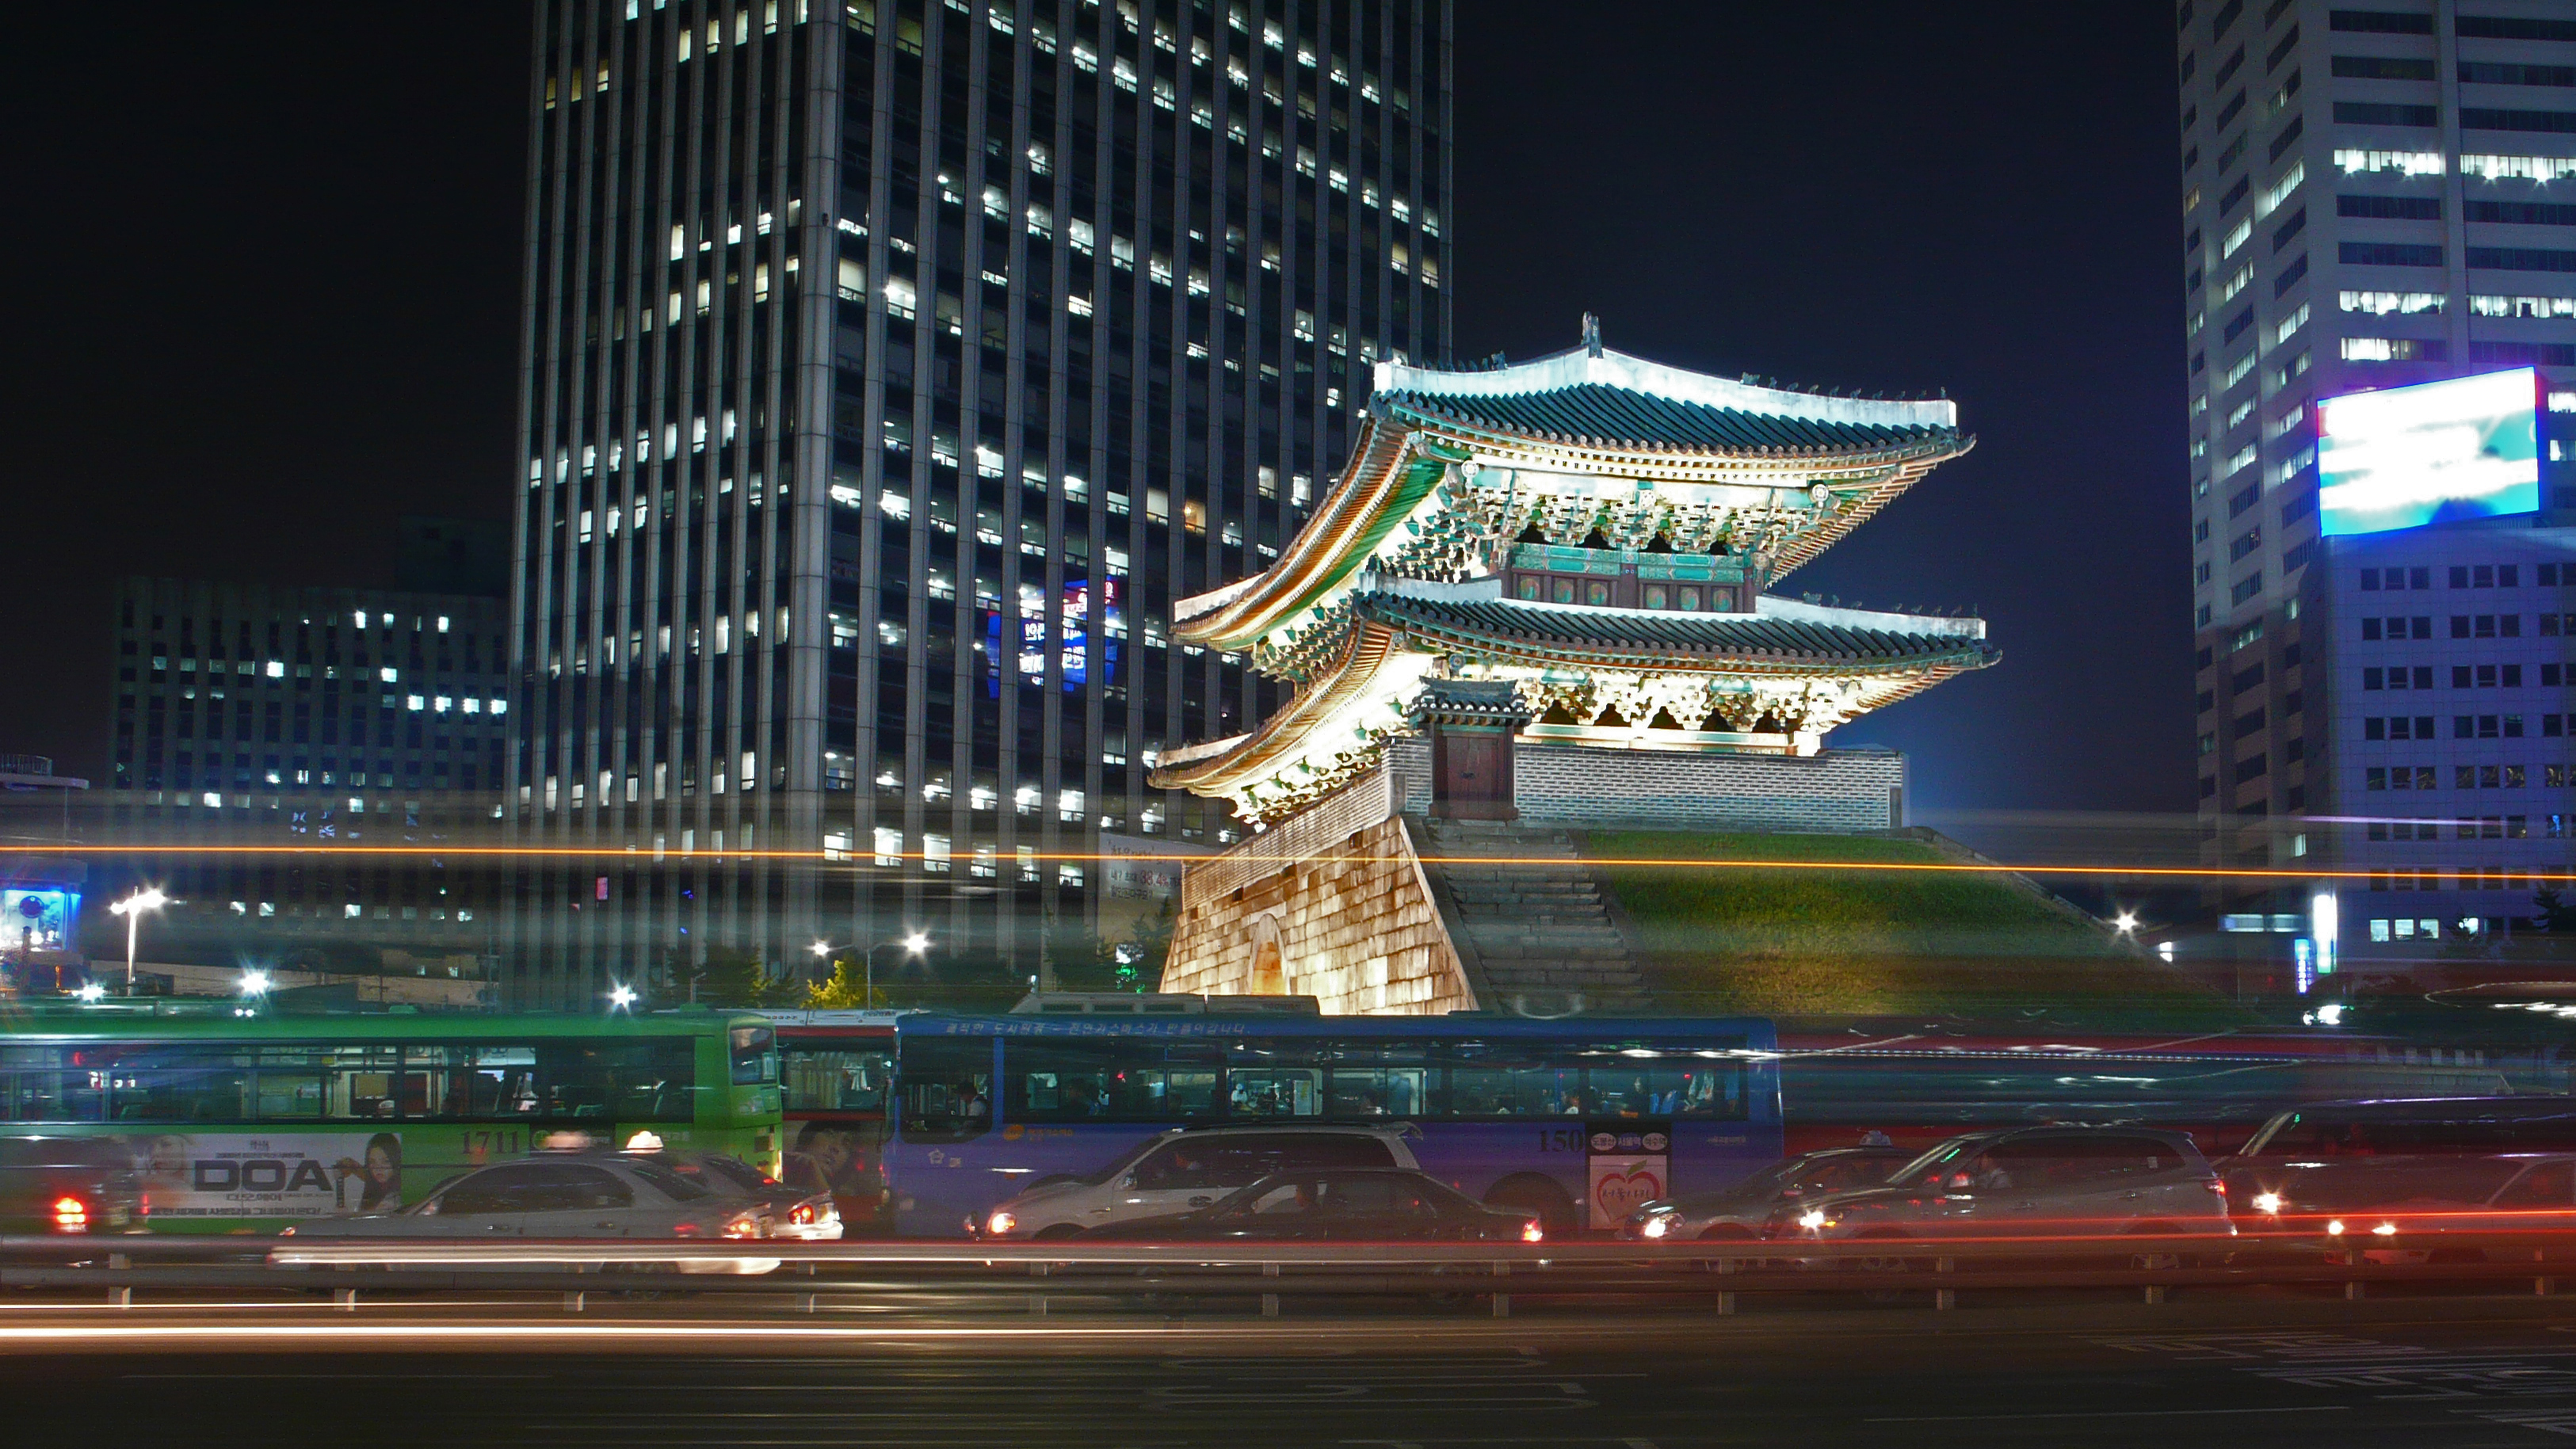 http://upload.wikimedia.org/wikipedia/commons/8/8f/Seoul-Namdaemun-at.night-02.jpg